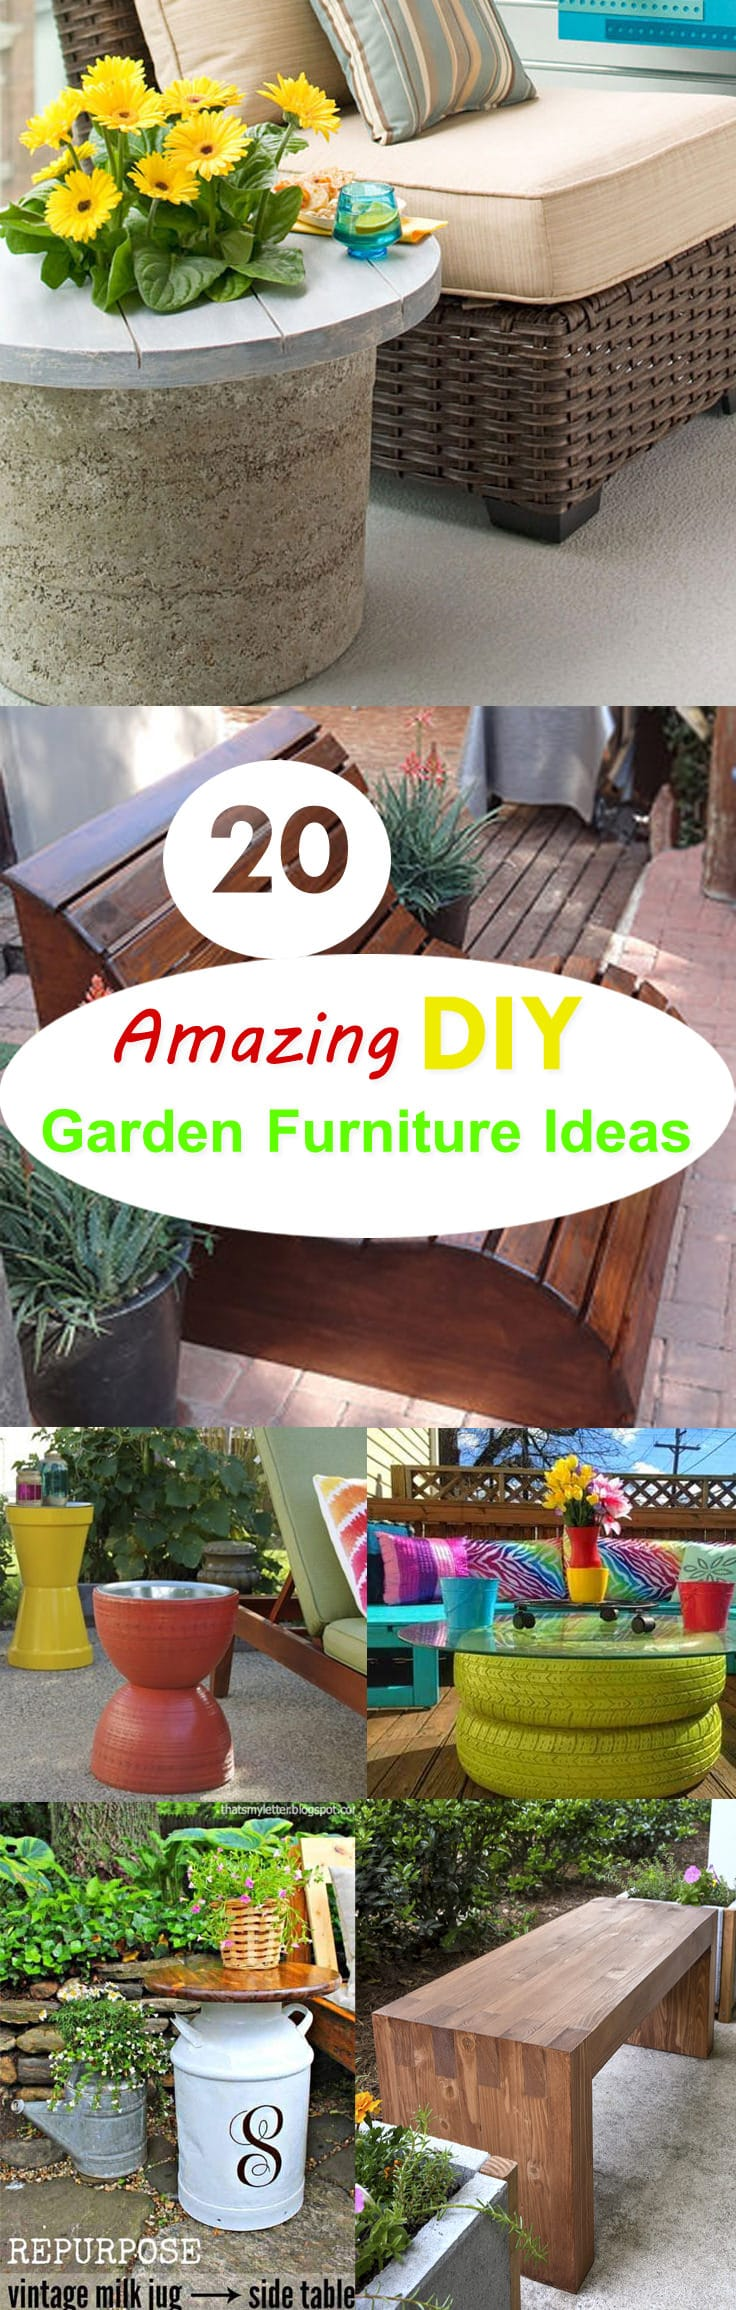 If you are good at doing DIY stuff you don't need to spend a lot of money to have awesome furniture for your outdoor space. Check out these 20 DIY garden furniture ideas for inspiration.